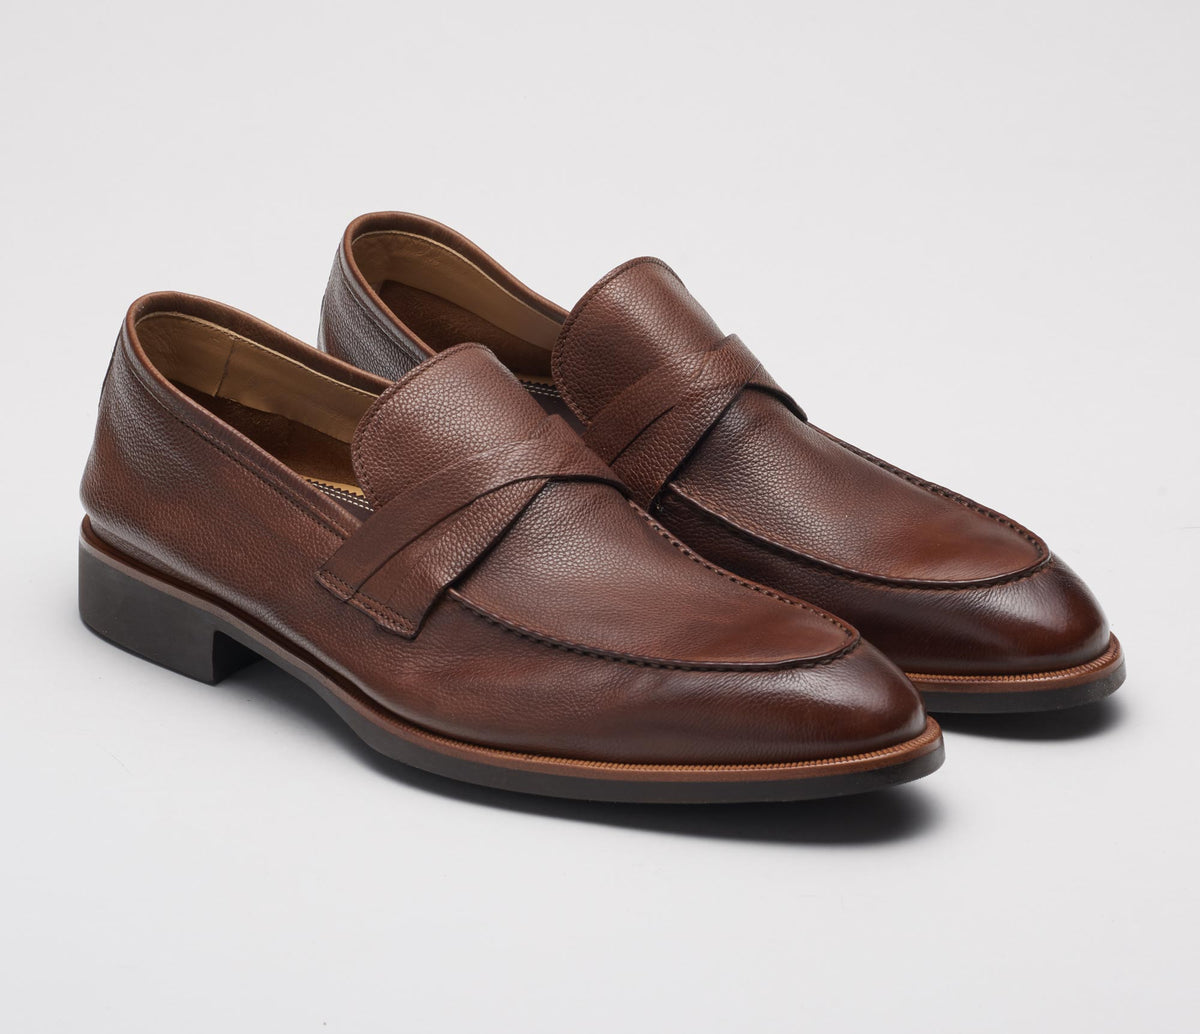 Corsica Leather Loafer in Cacao